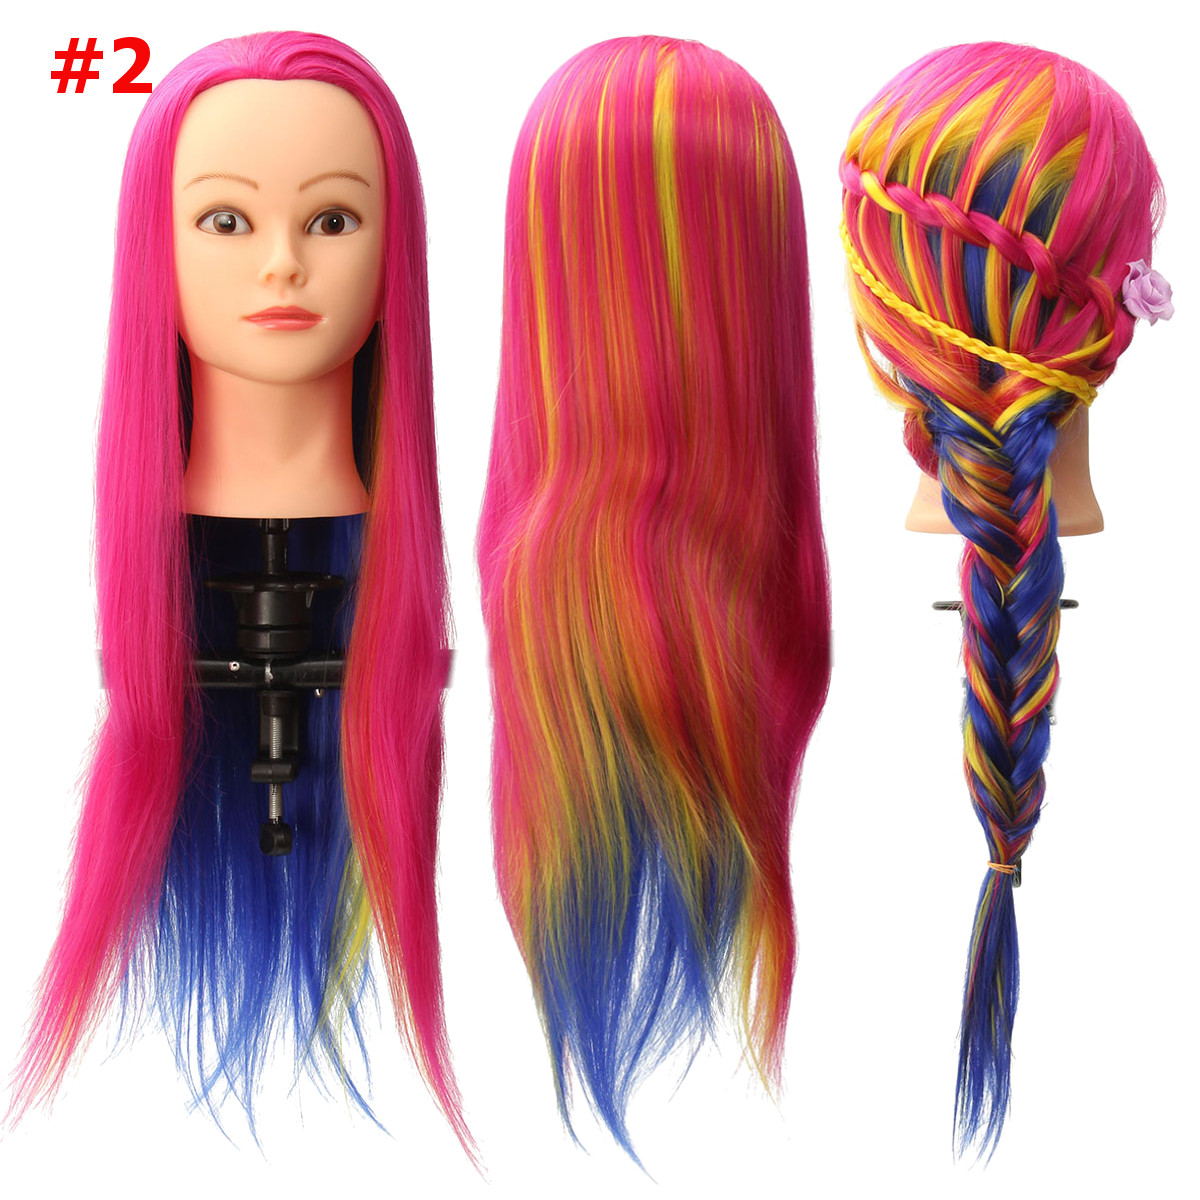 8 Colors Salon Hairdressing Braiding Practice Mannequin Hair Training Head Models With Clamp